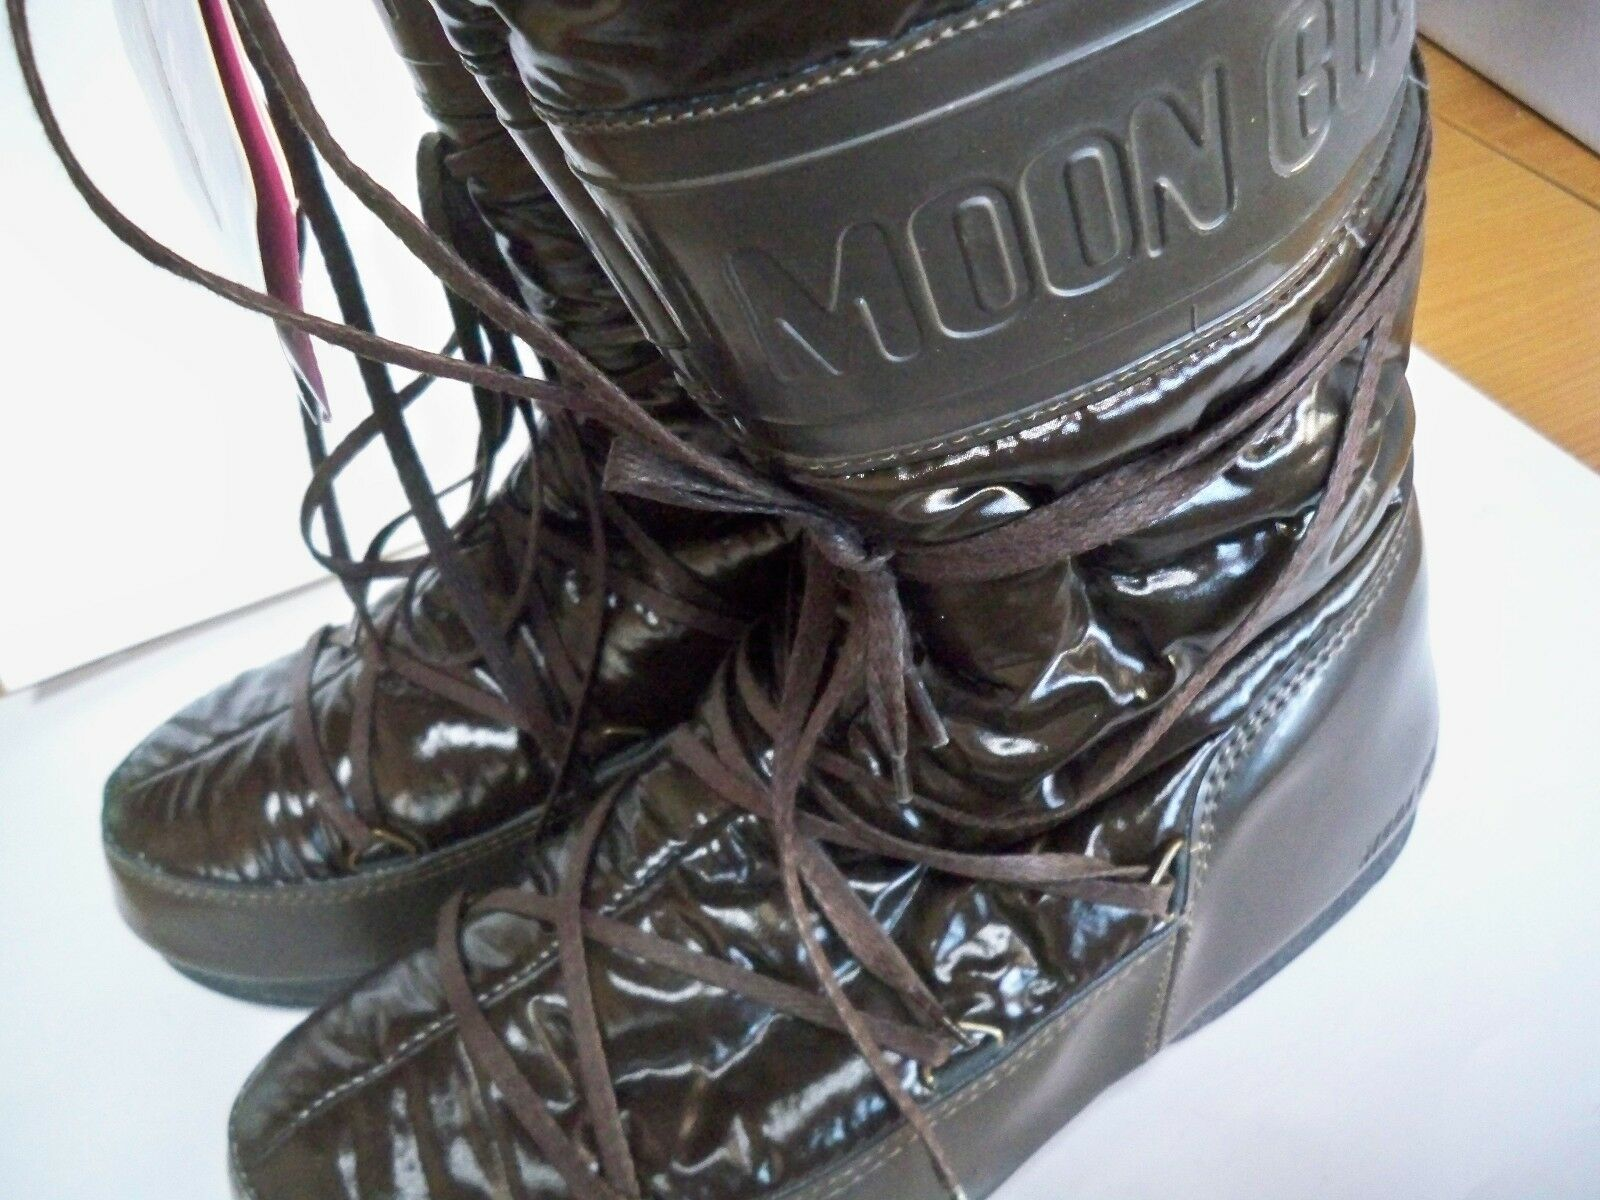 DOPOSCI MOON BOOT W.E. SOFT MARRONE EU MISURA EU MARRONE 41/42 USA 8.5/9 UK 7.5/8 14e03a